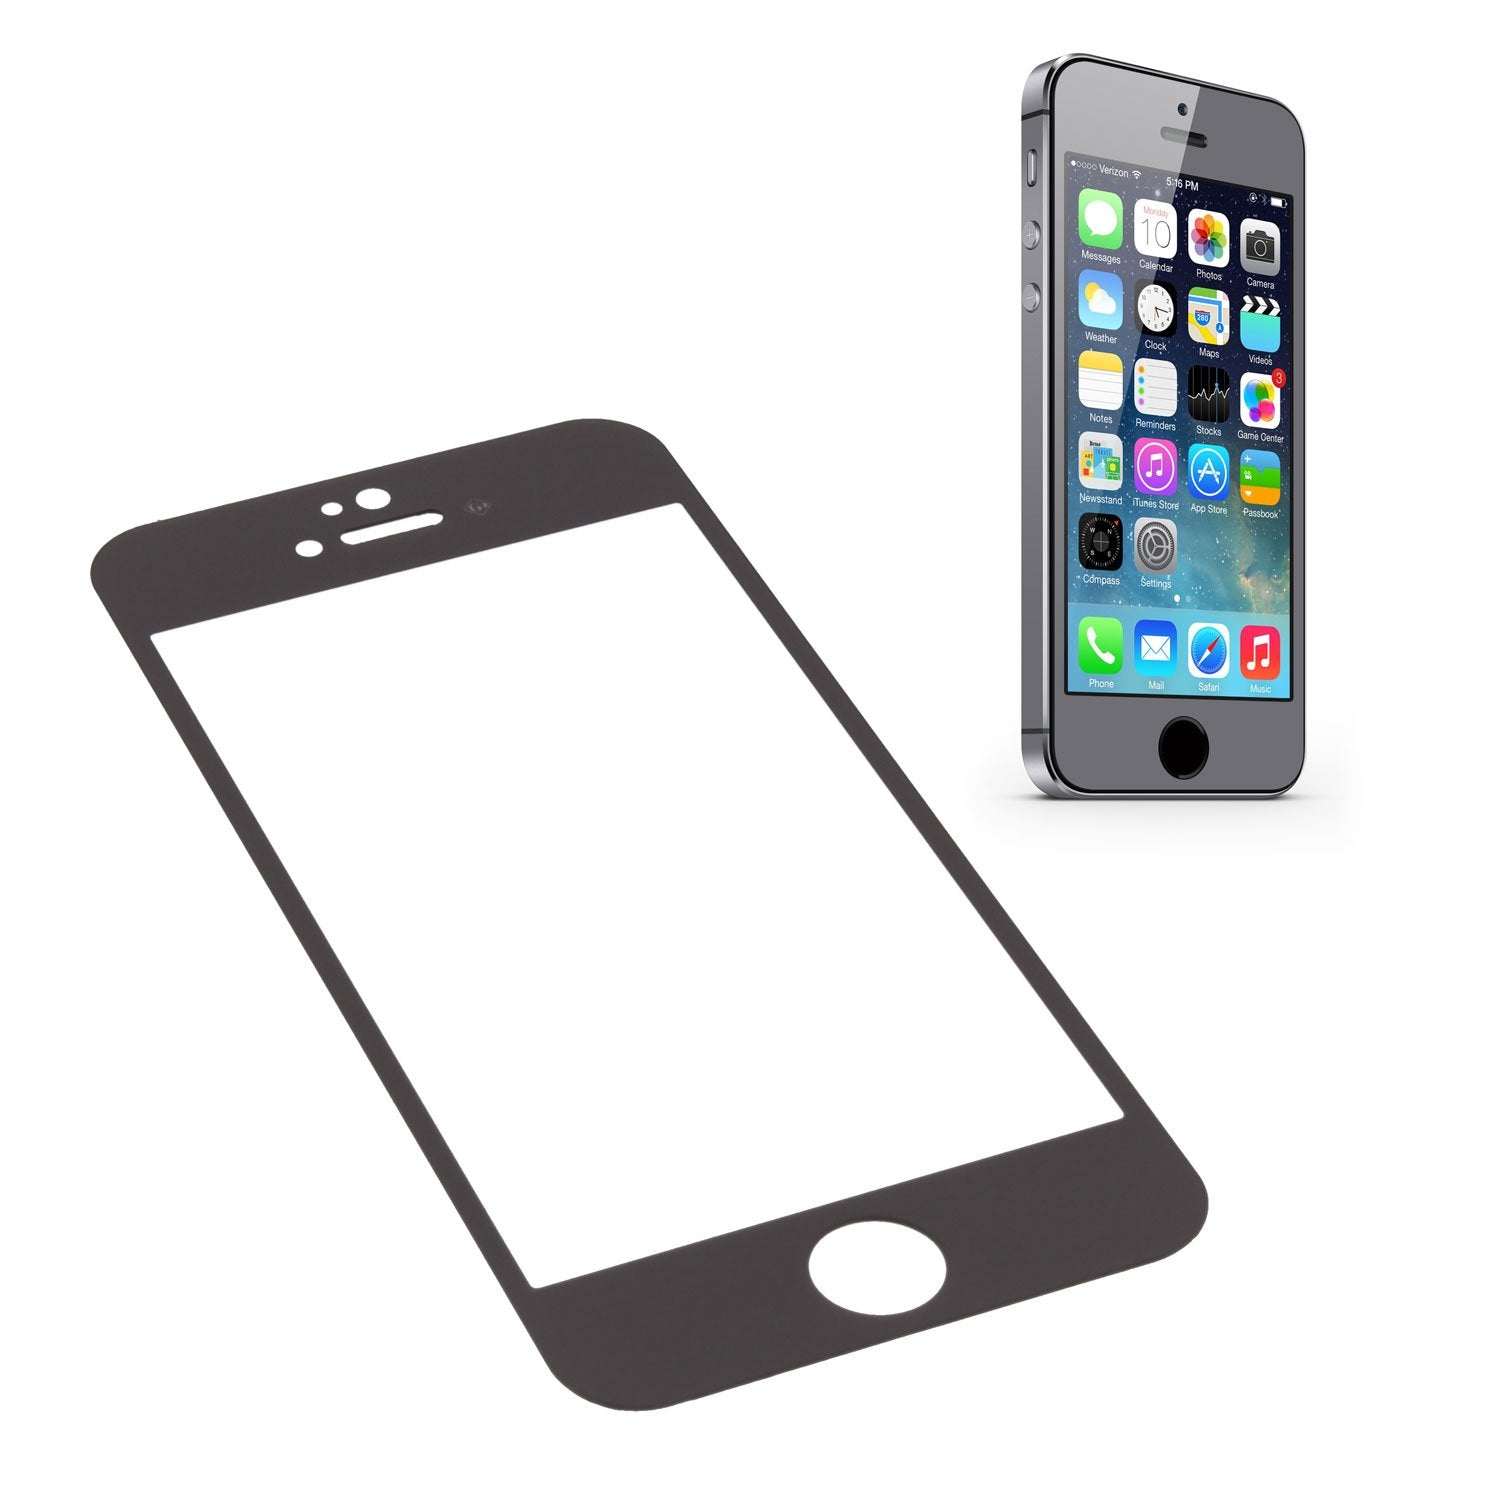 GGS 0.26mm SelfAdhesive Optical Glass LCD Screen Protector for Apple iPhone 5S Space Gray